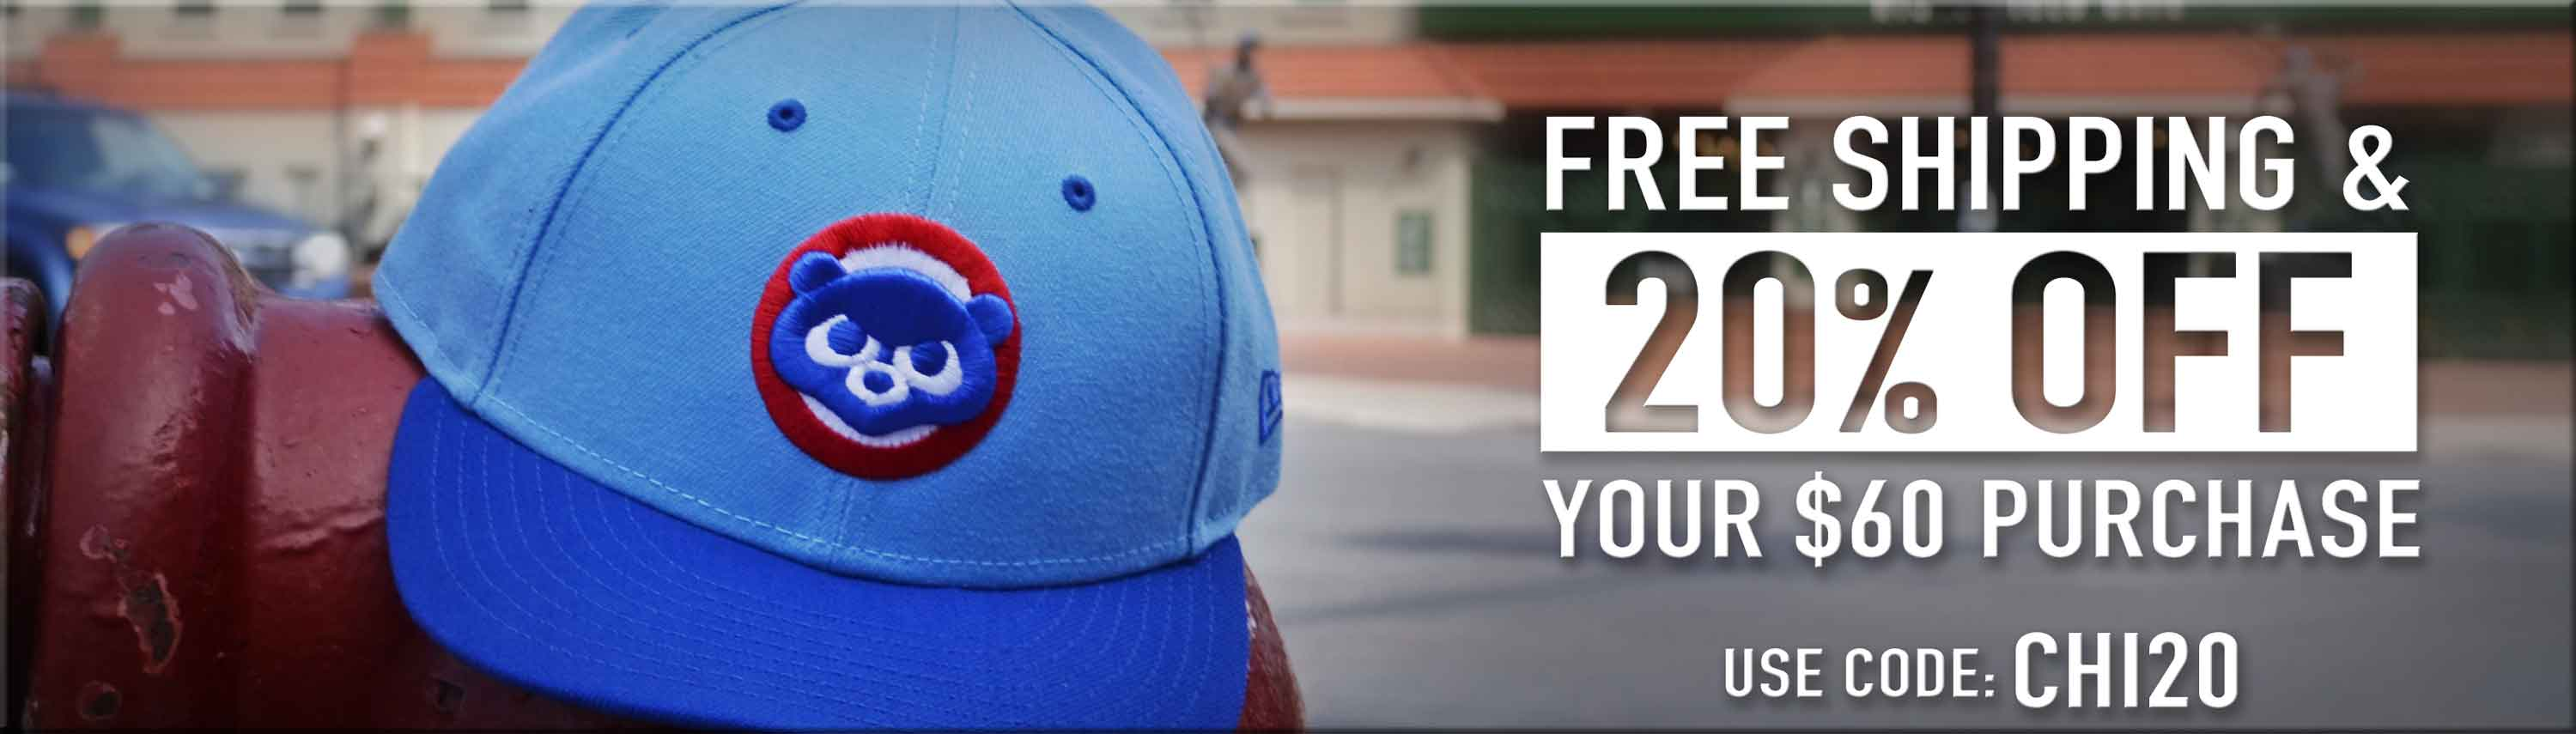 Enjoy 20% Off Your $60 Purchase, and Free Standard Shipping. Use Code: CHI20 - Click to shop Cubs Hats